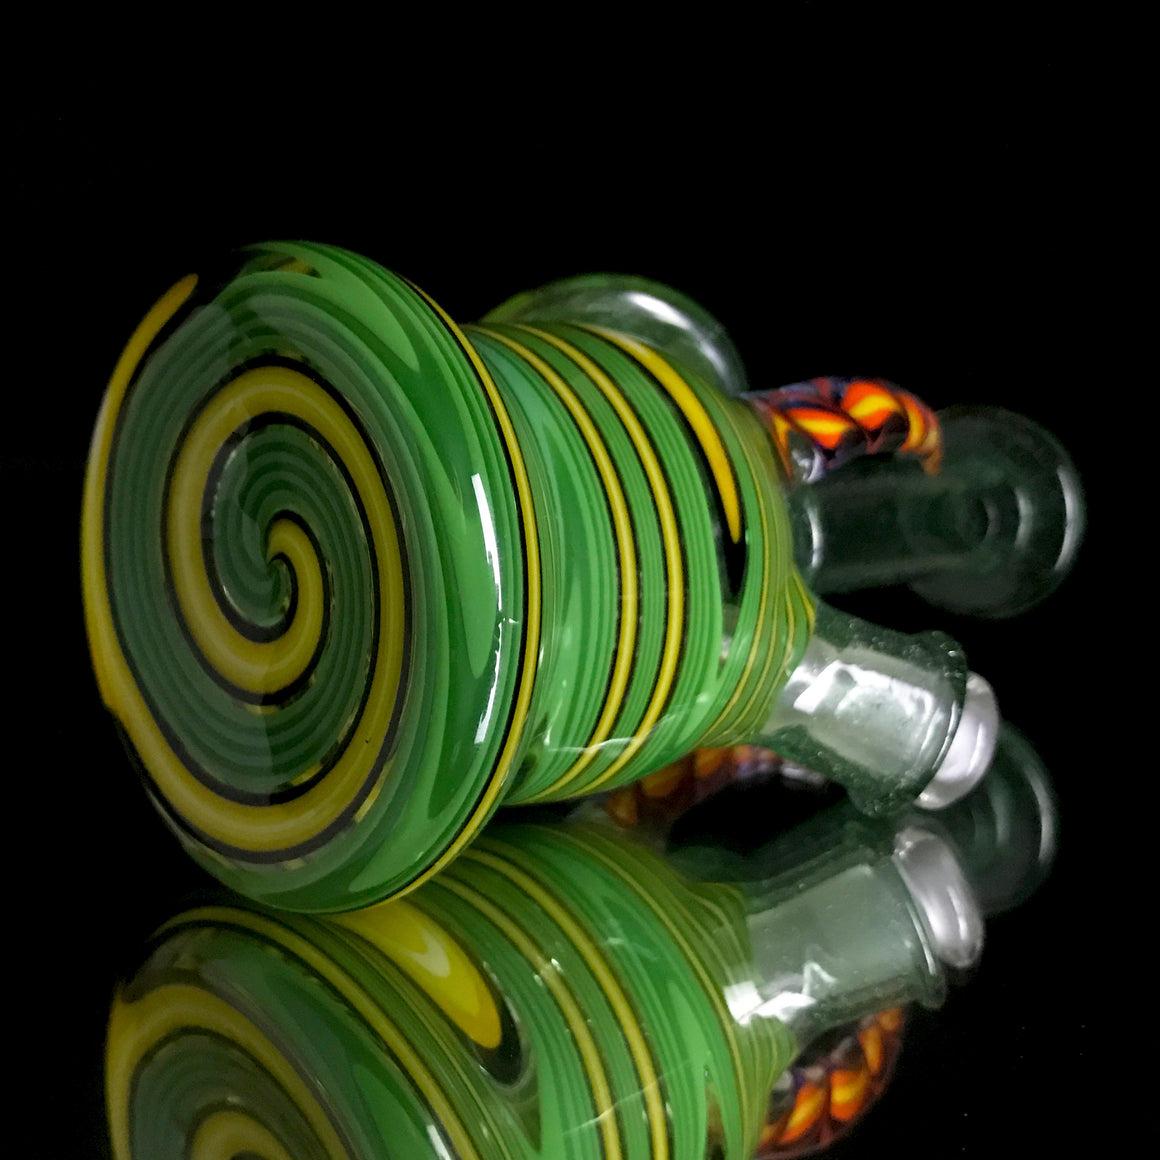 Fully-worked Mini Tube - Tropical Green/Jungle Linework - 10mm Female